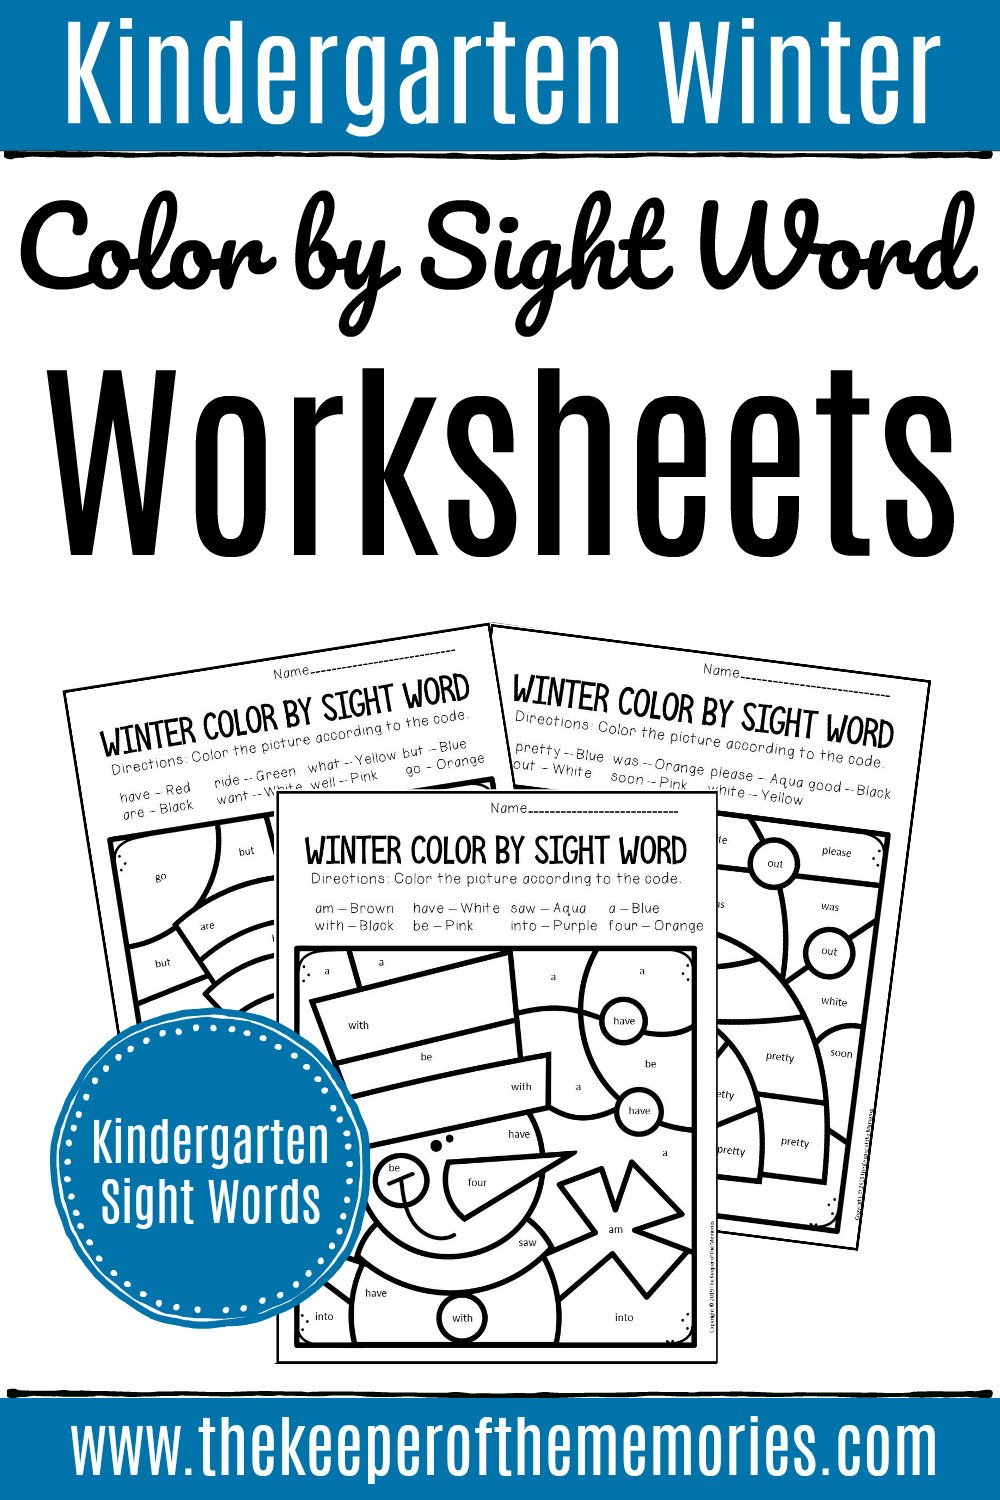 Making Words Kindergarten Worksheets Color by Sight Word Winter Kindergarten Worksheets the